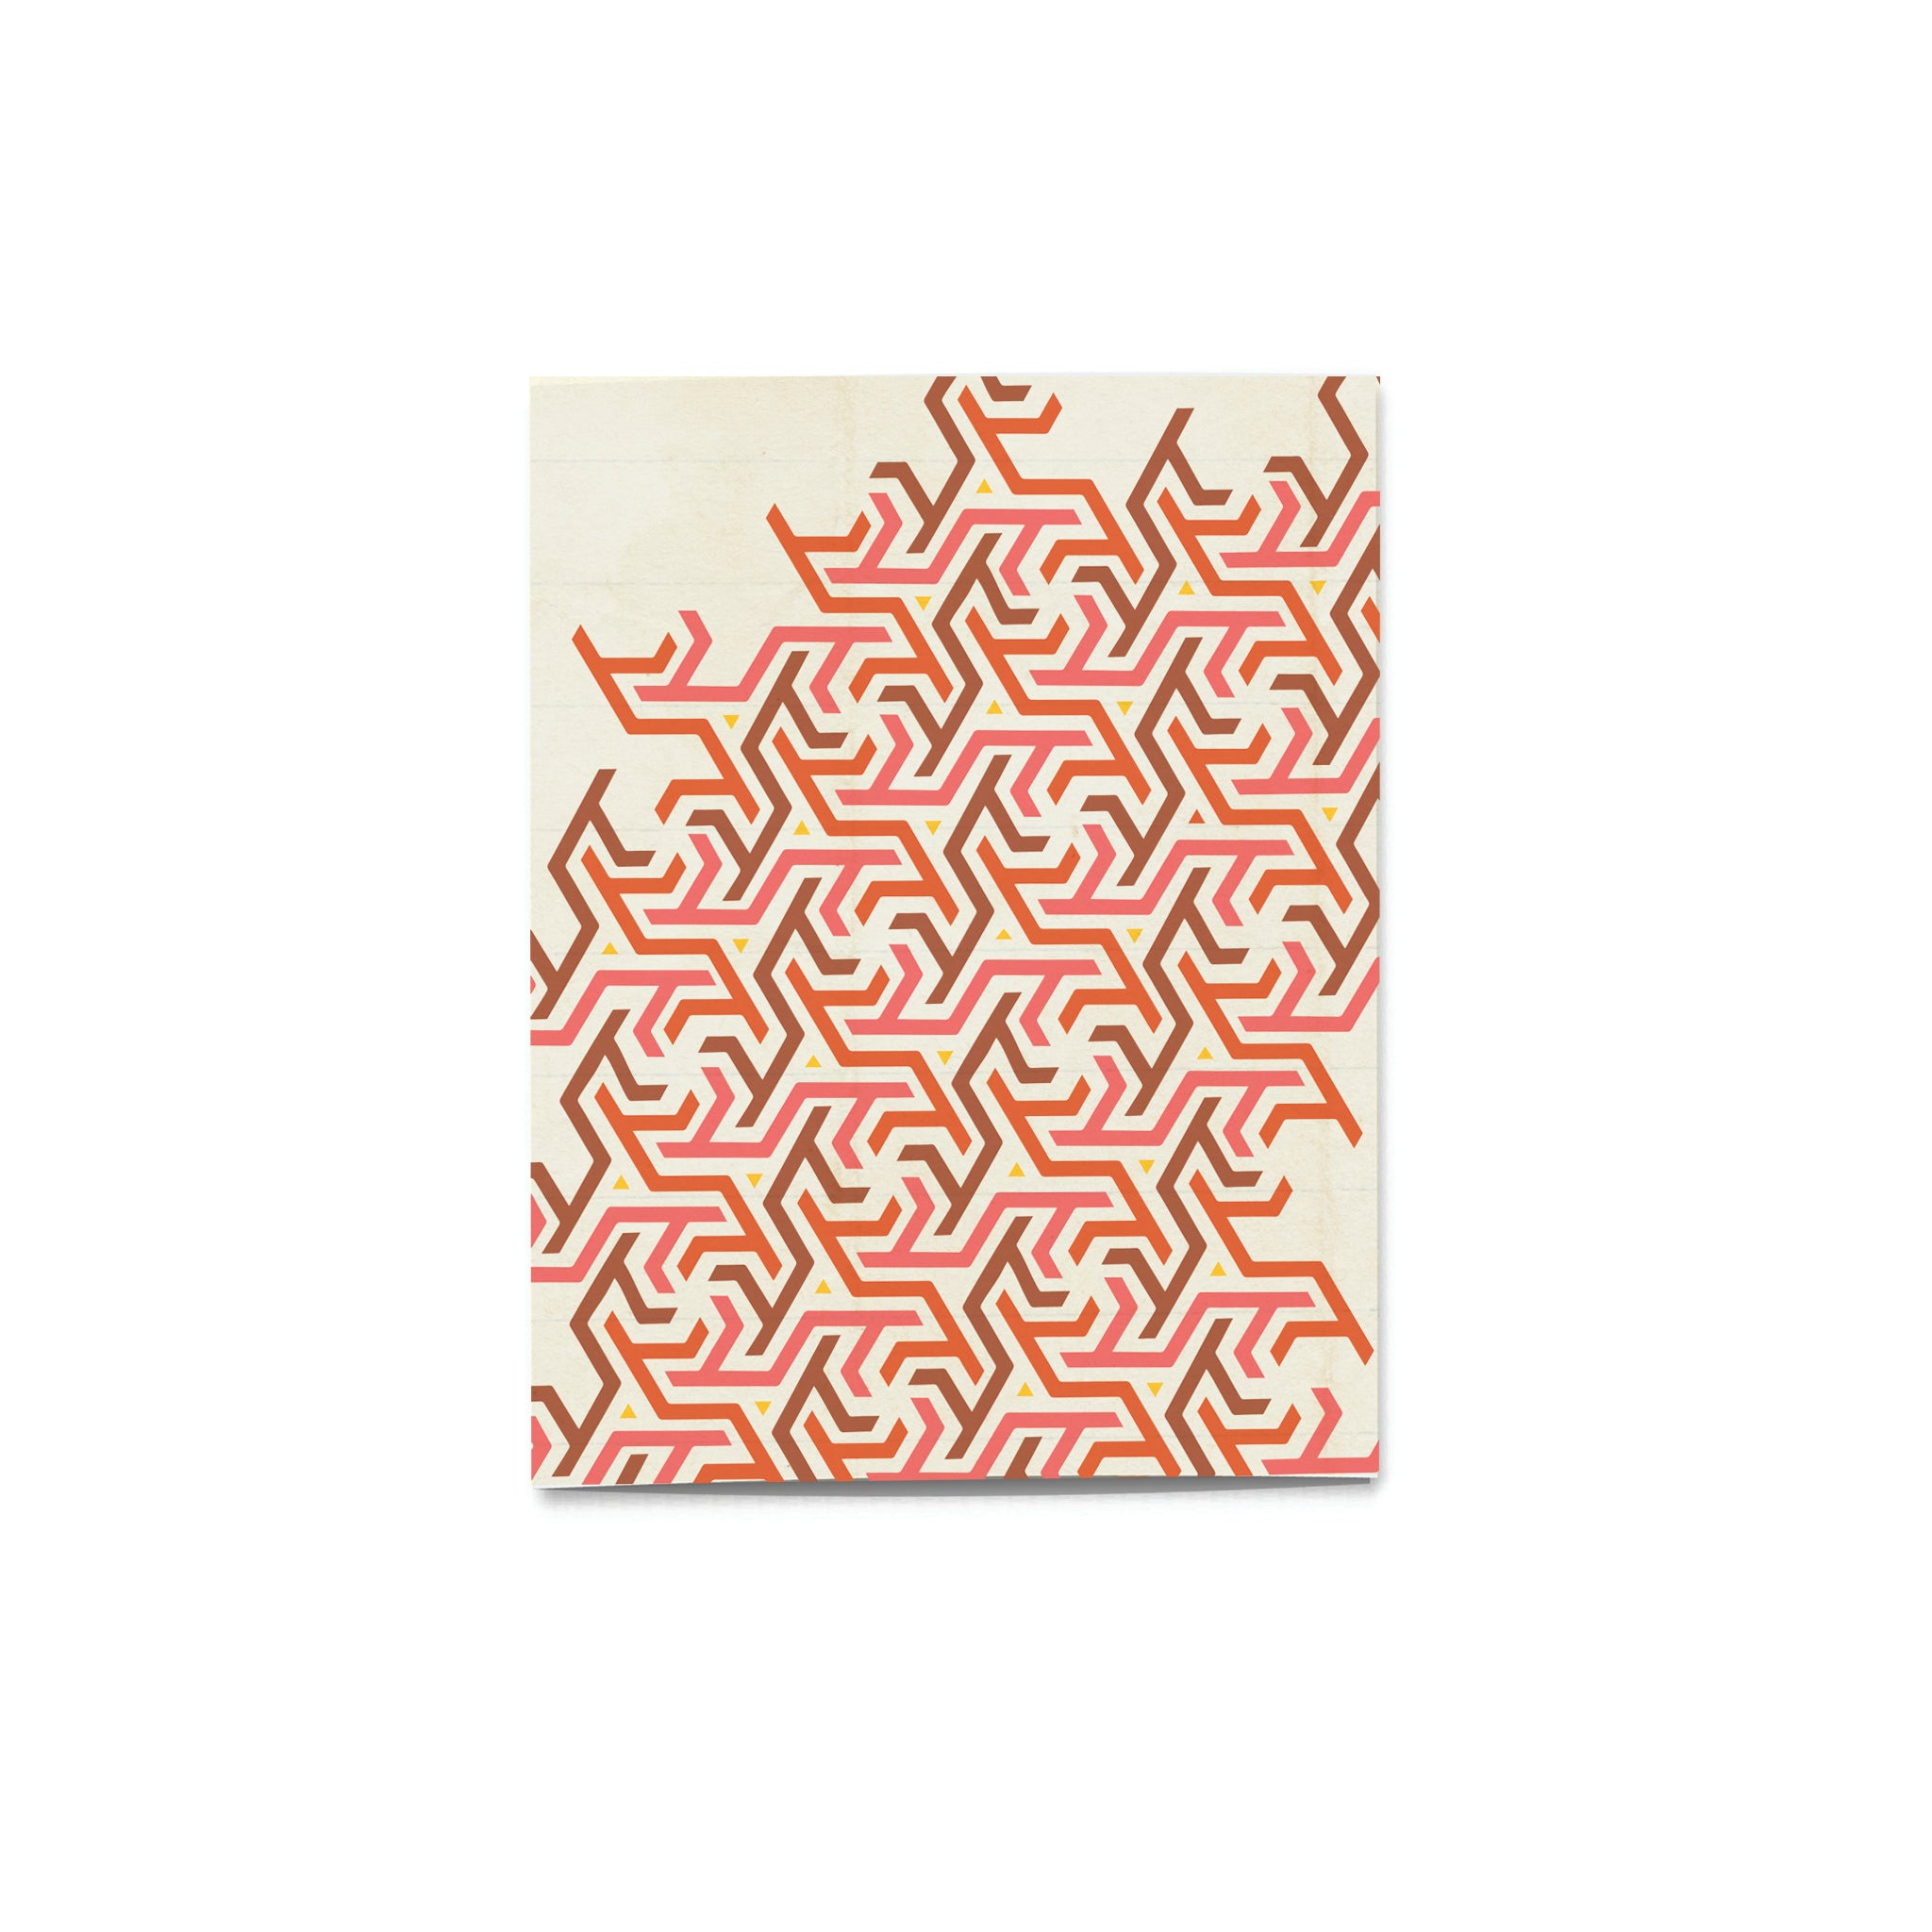 'Pattern Pop' Maze Card